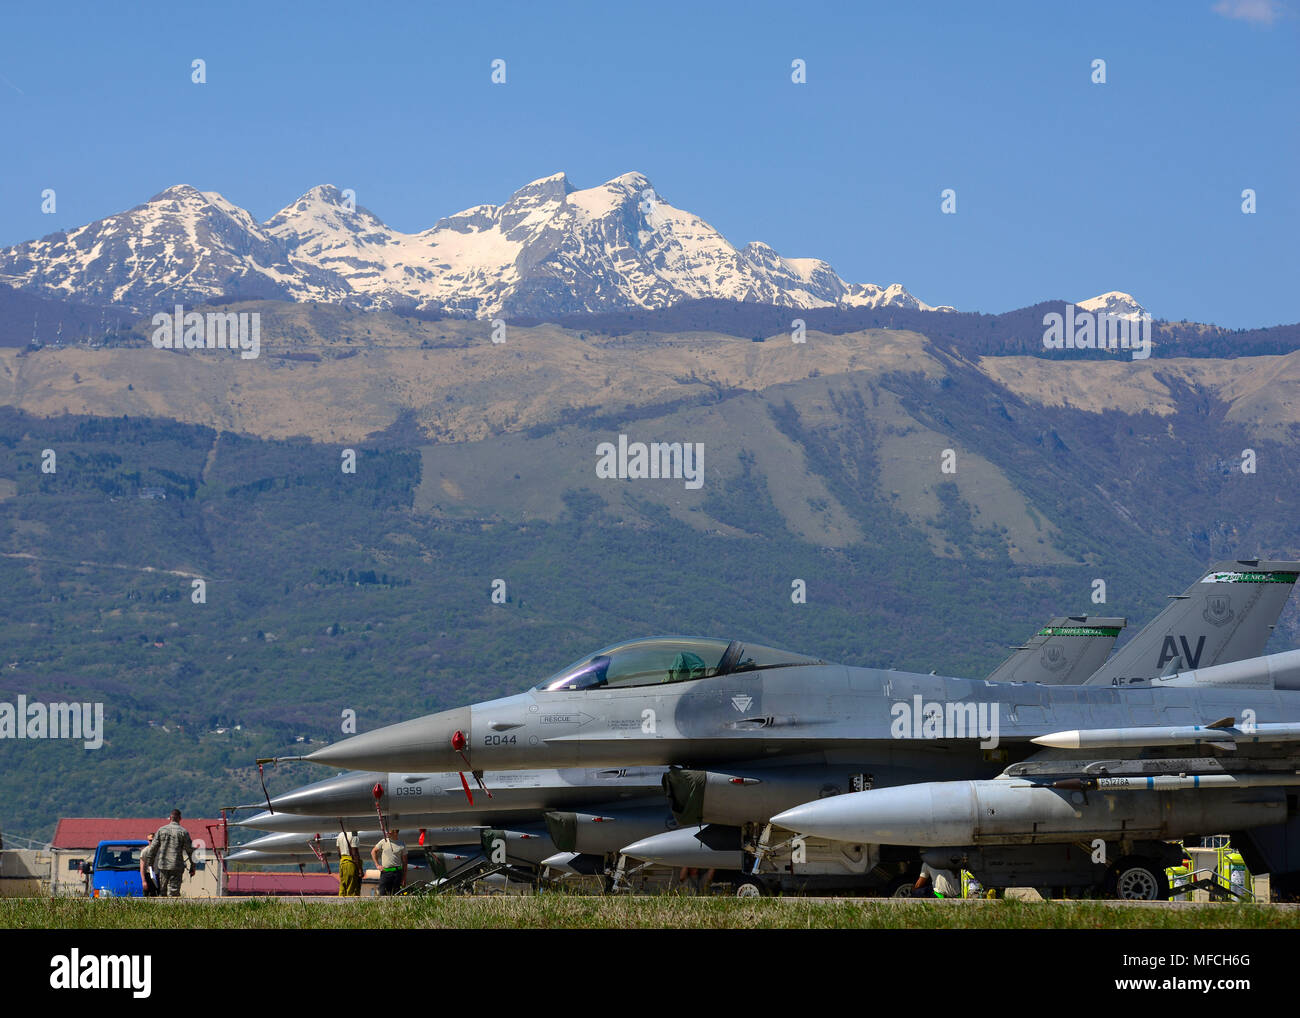 F-16 Fighting Falcons sit on the flightline at Aviano Air Base, Italy, April 19, 2018. Airmen from the 555th Aircraft Maintenance Unit perform routine maintenance on the jets before they fly. - Stock Image